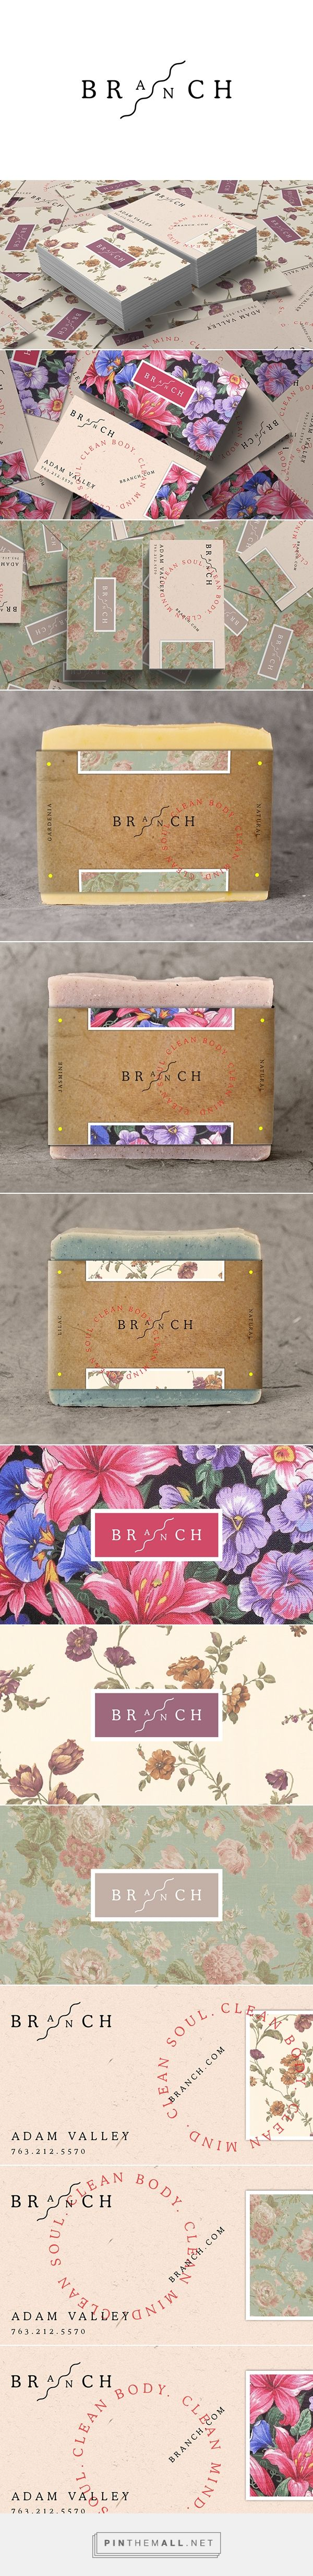 Branch Soap on Behance | Fivestar Branding – Design and Branding Agency & Inspiration Gallery